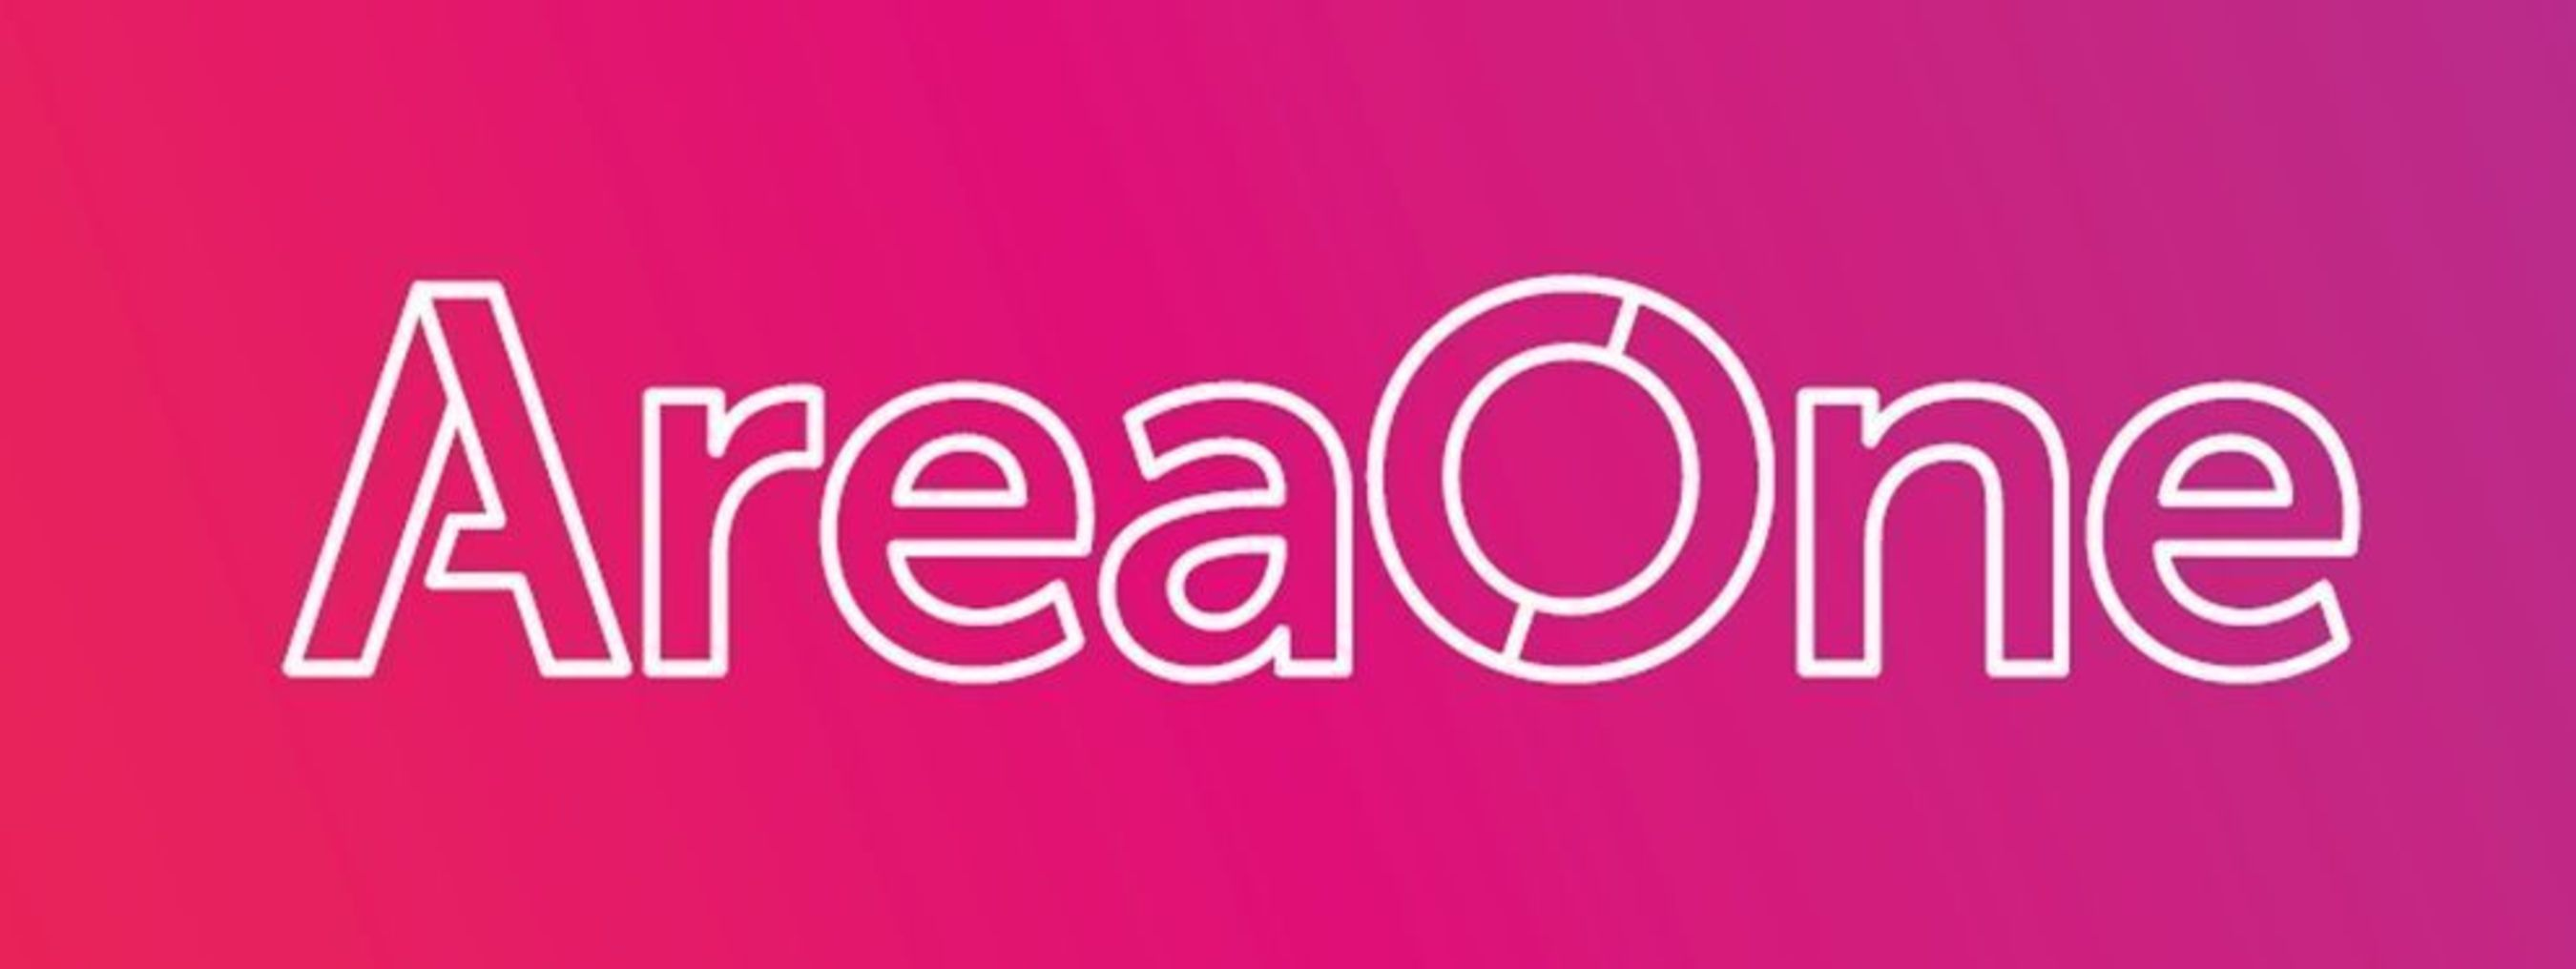 AreaOne logo